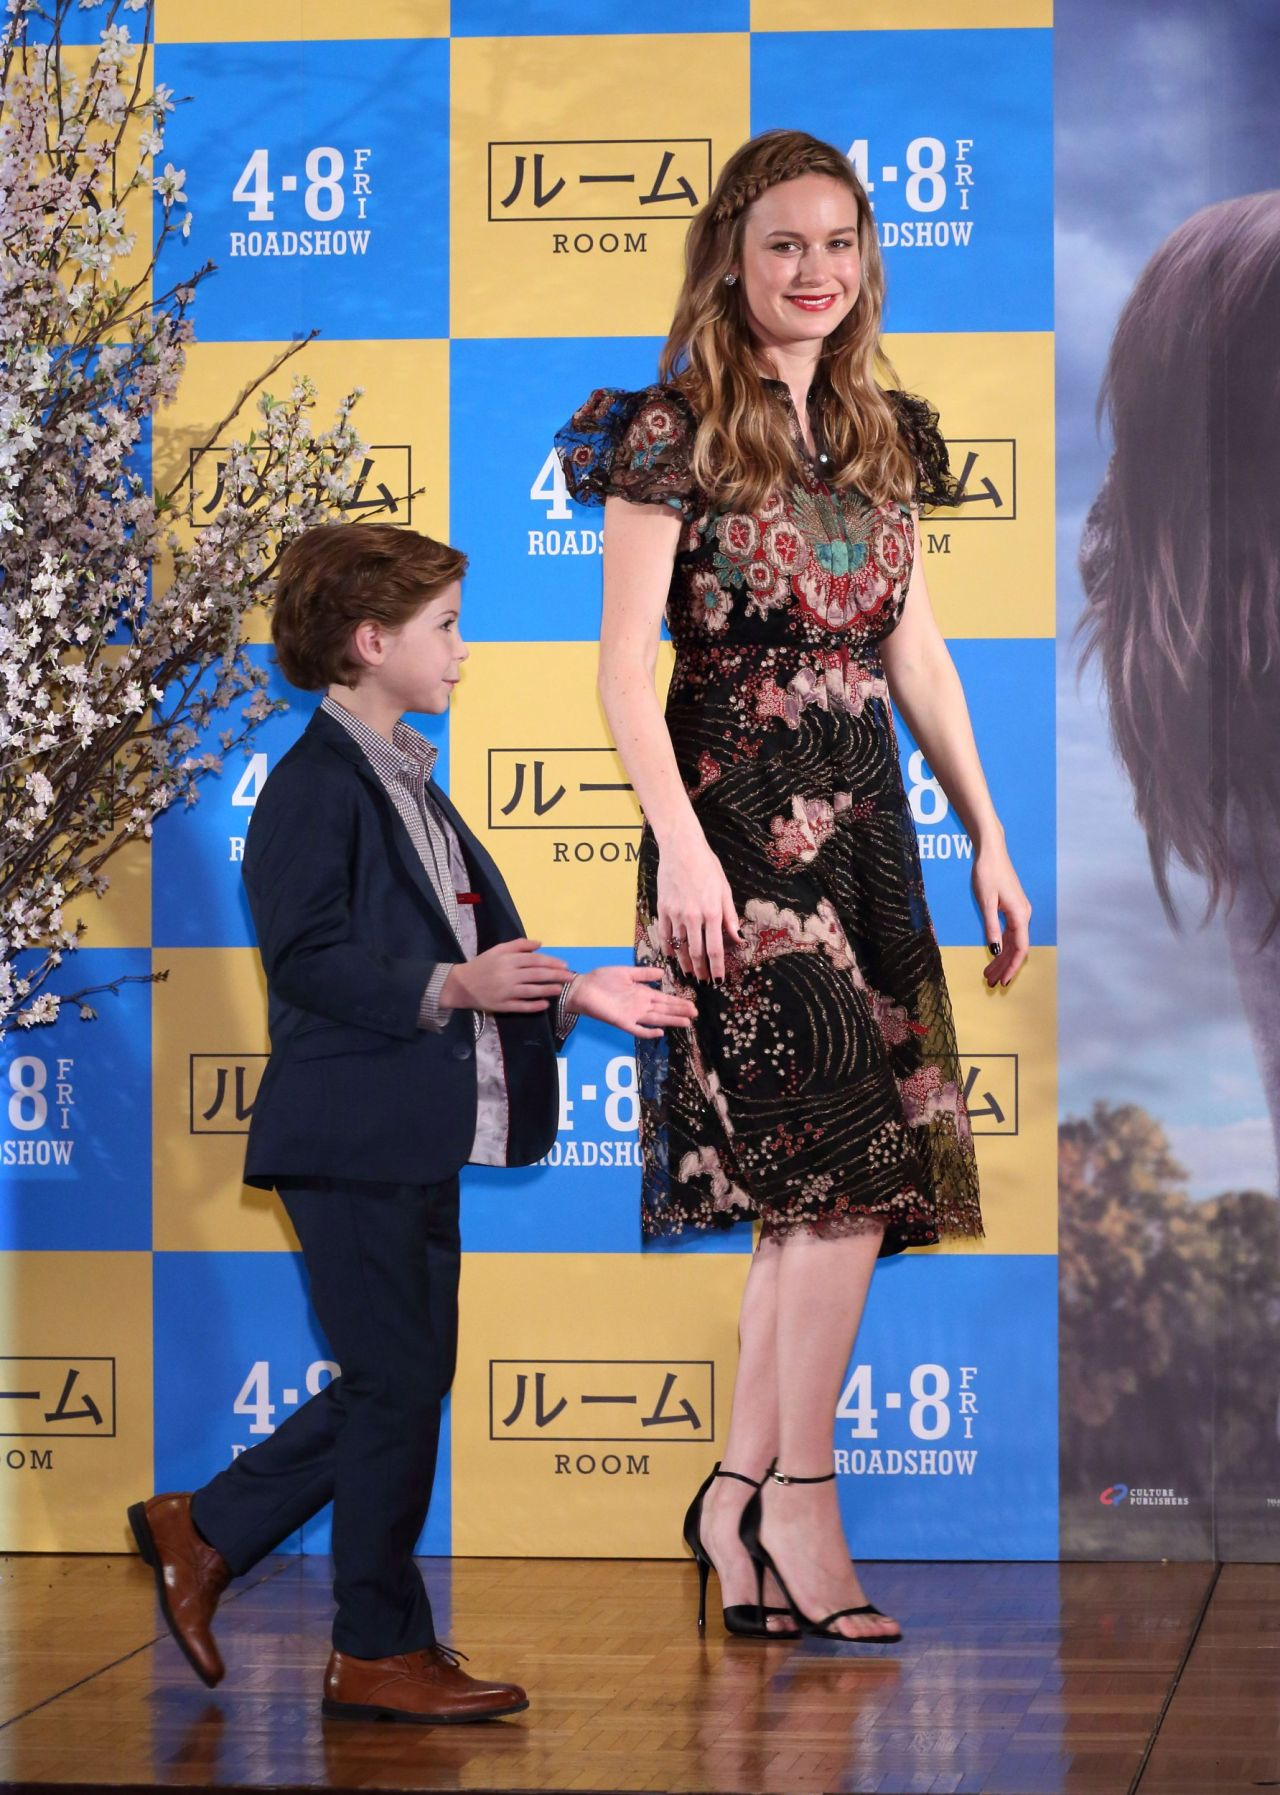 Brie Larson Room Press Conference In Tokyo Japan